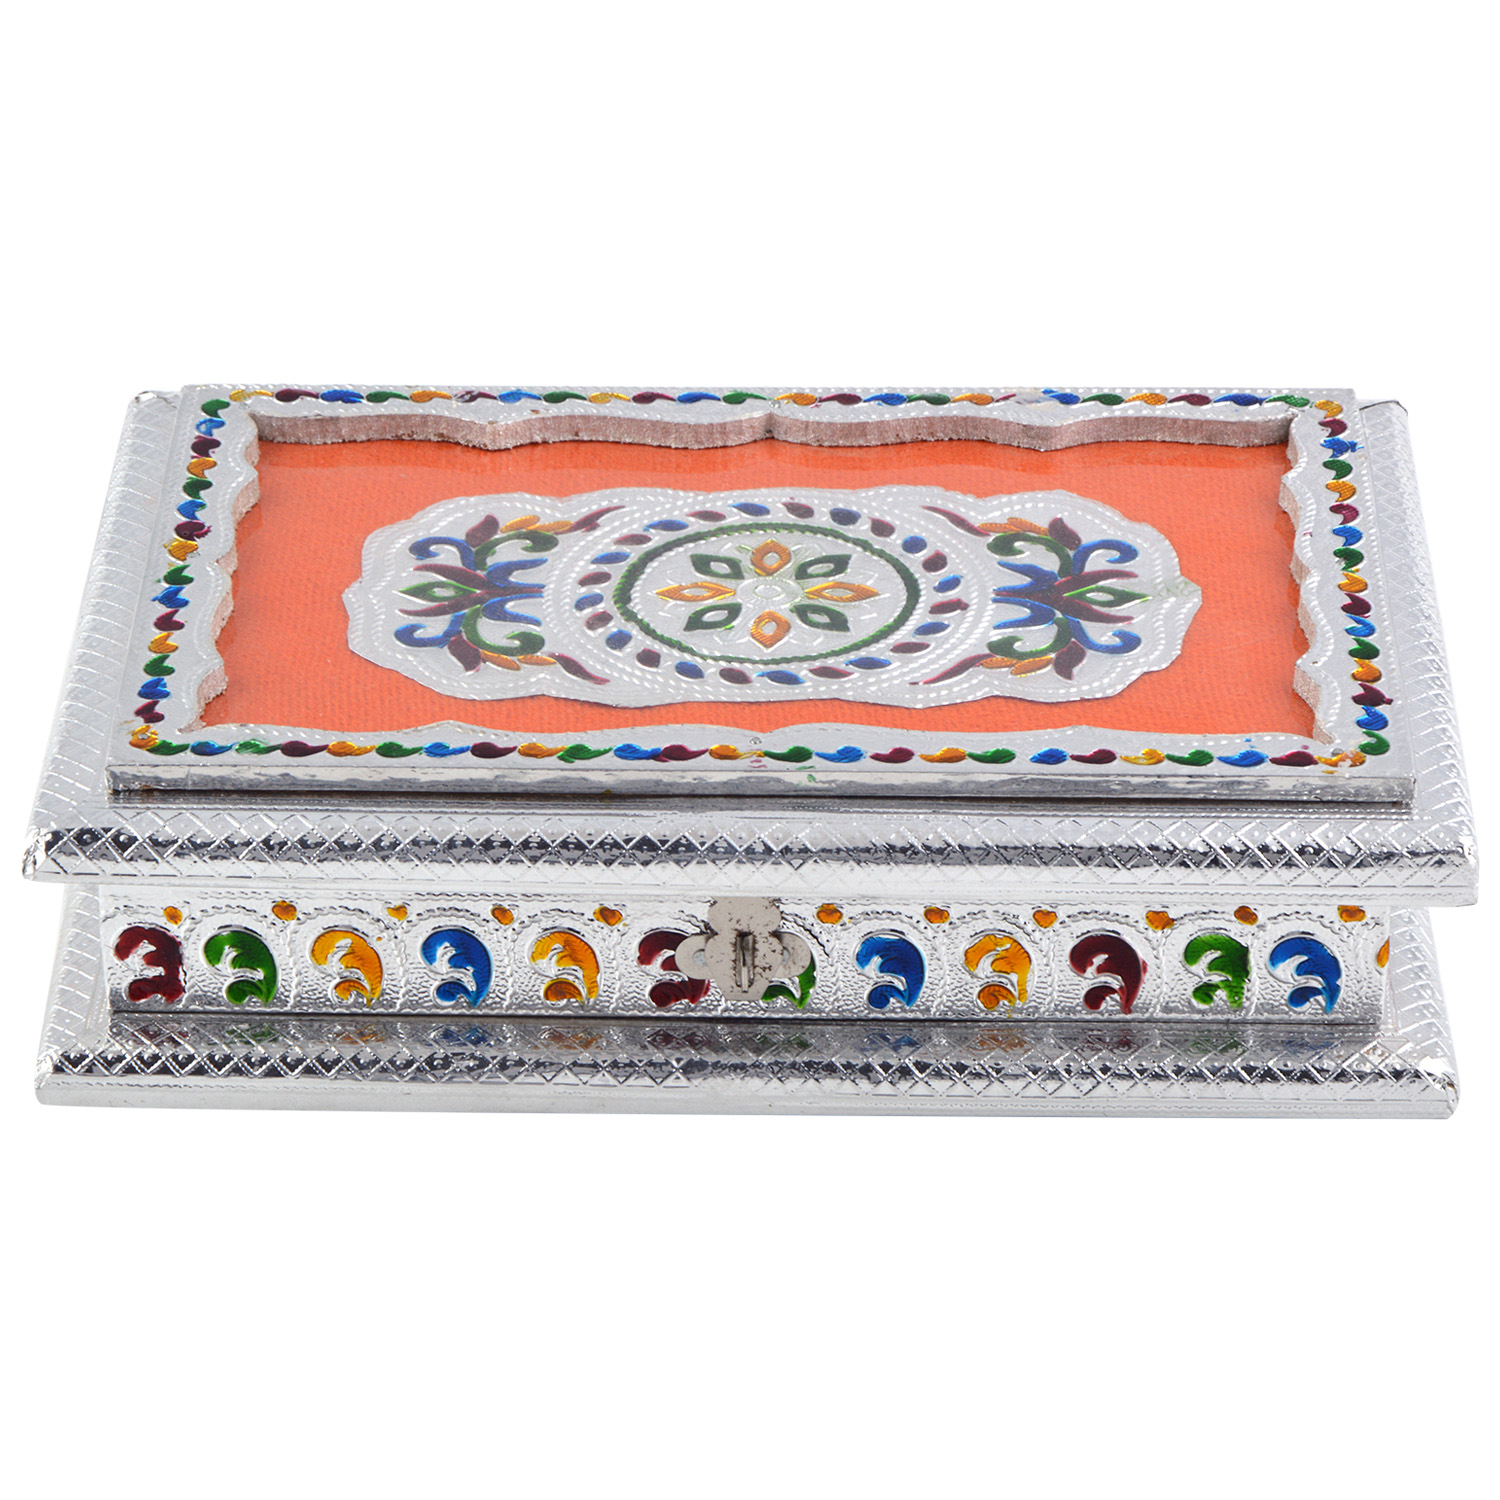 JK Handicraft 10x7 Silver Meena Dry Fruit/ Multipurpose Box  (18cmX25cmX6cm)